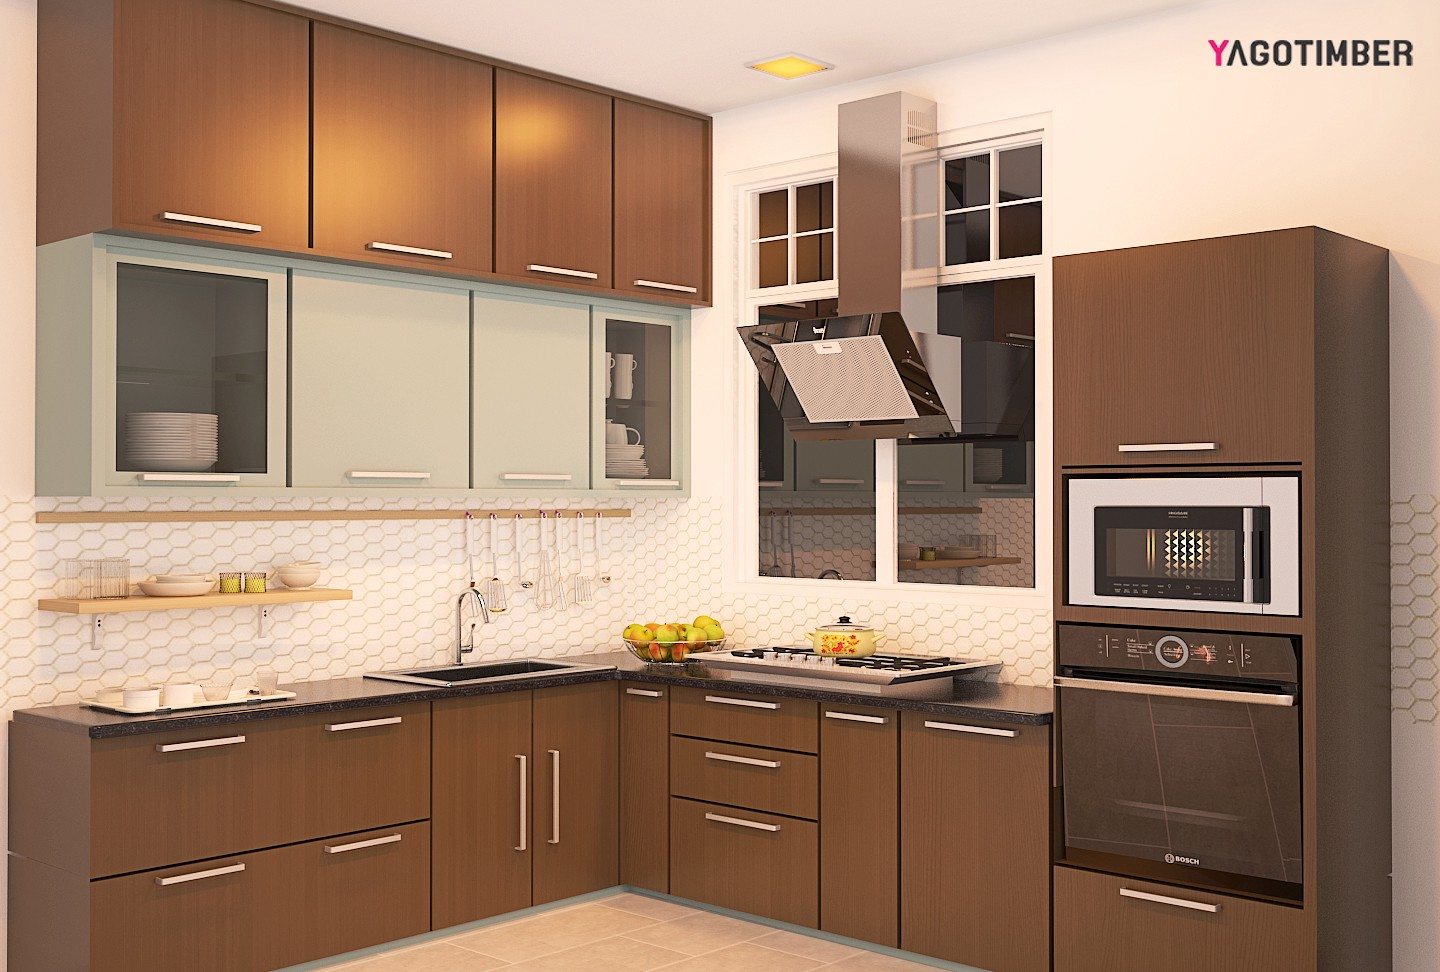 Best Small Kitchen Design Ideas Which Will Surely Amuse You By Yagotimber Com Medium